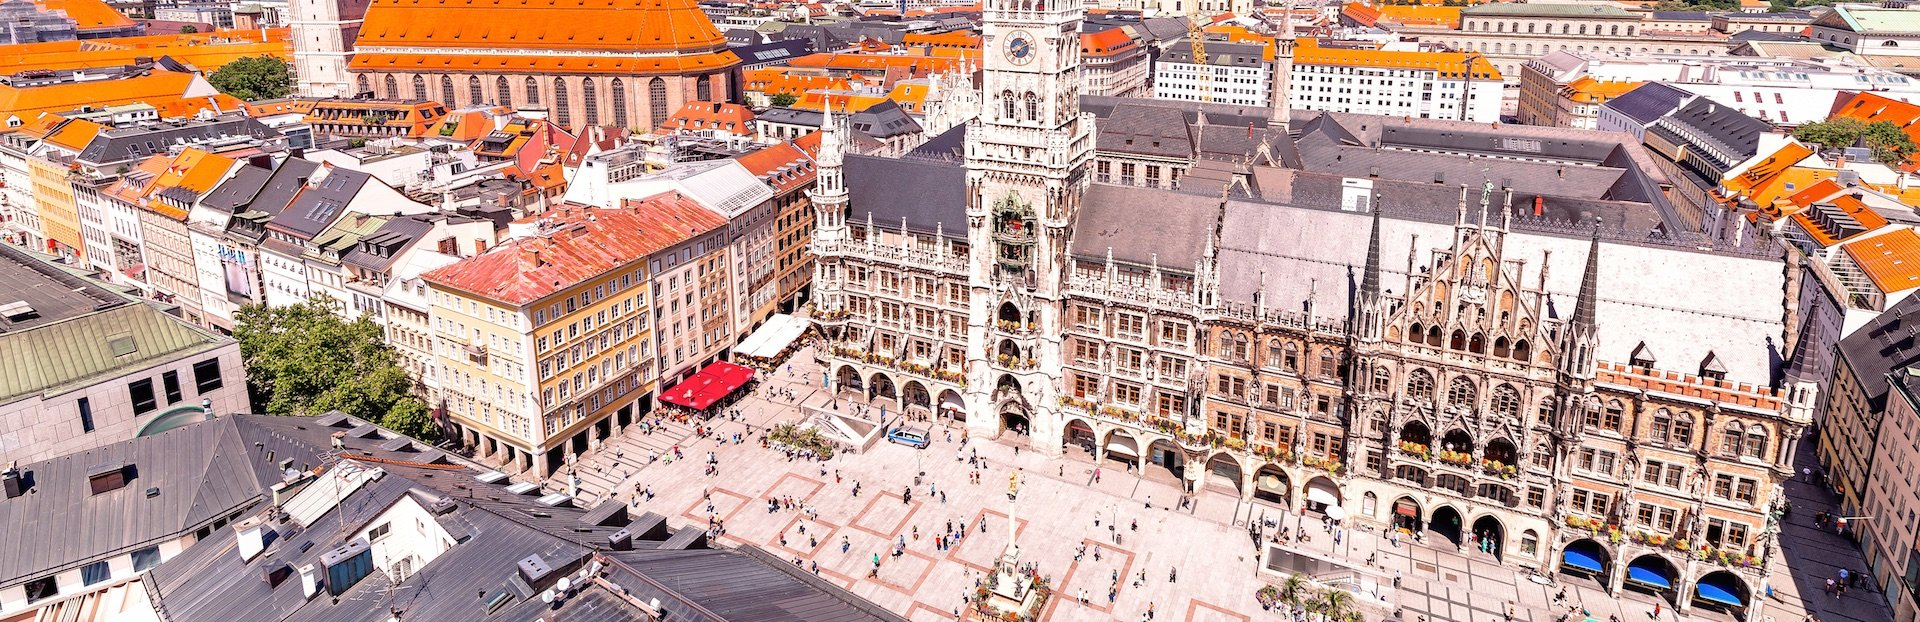 Munich audio tour: Munich through the centuries: highlights of the historic city centre